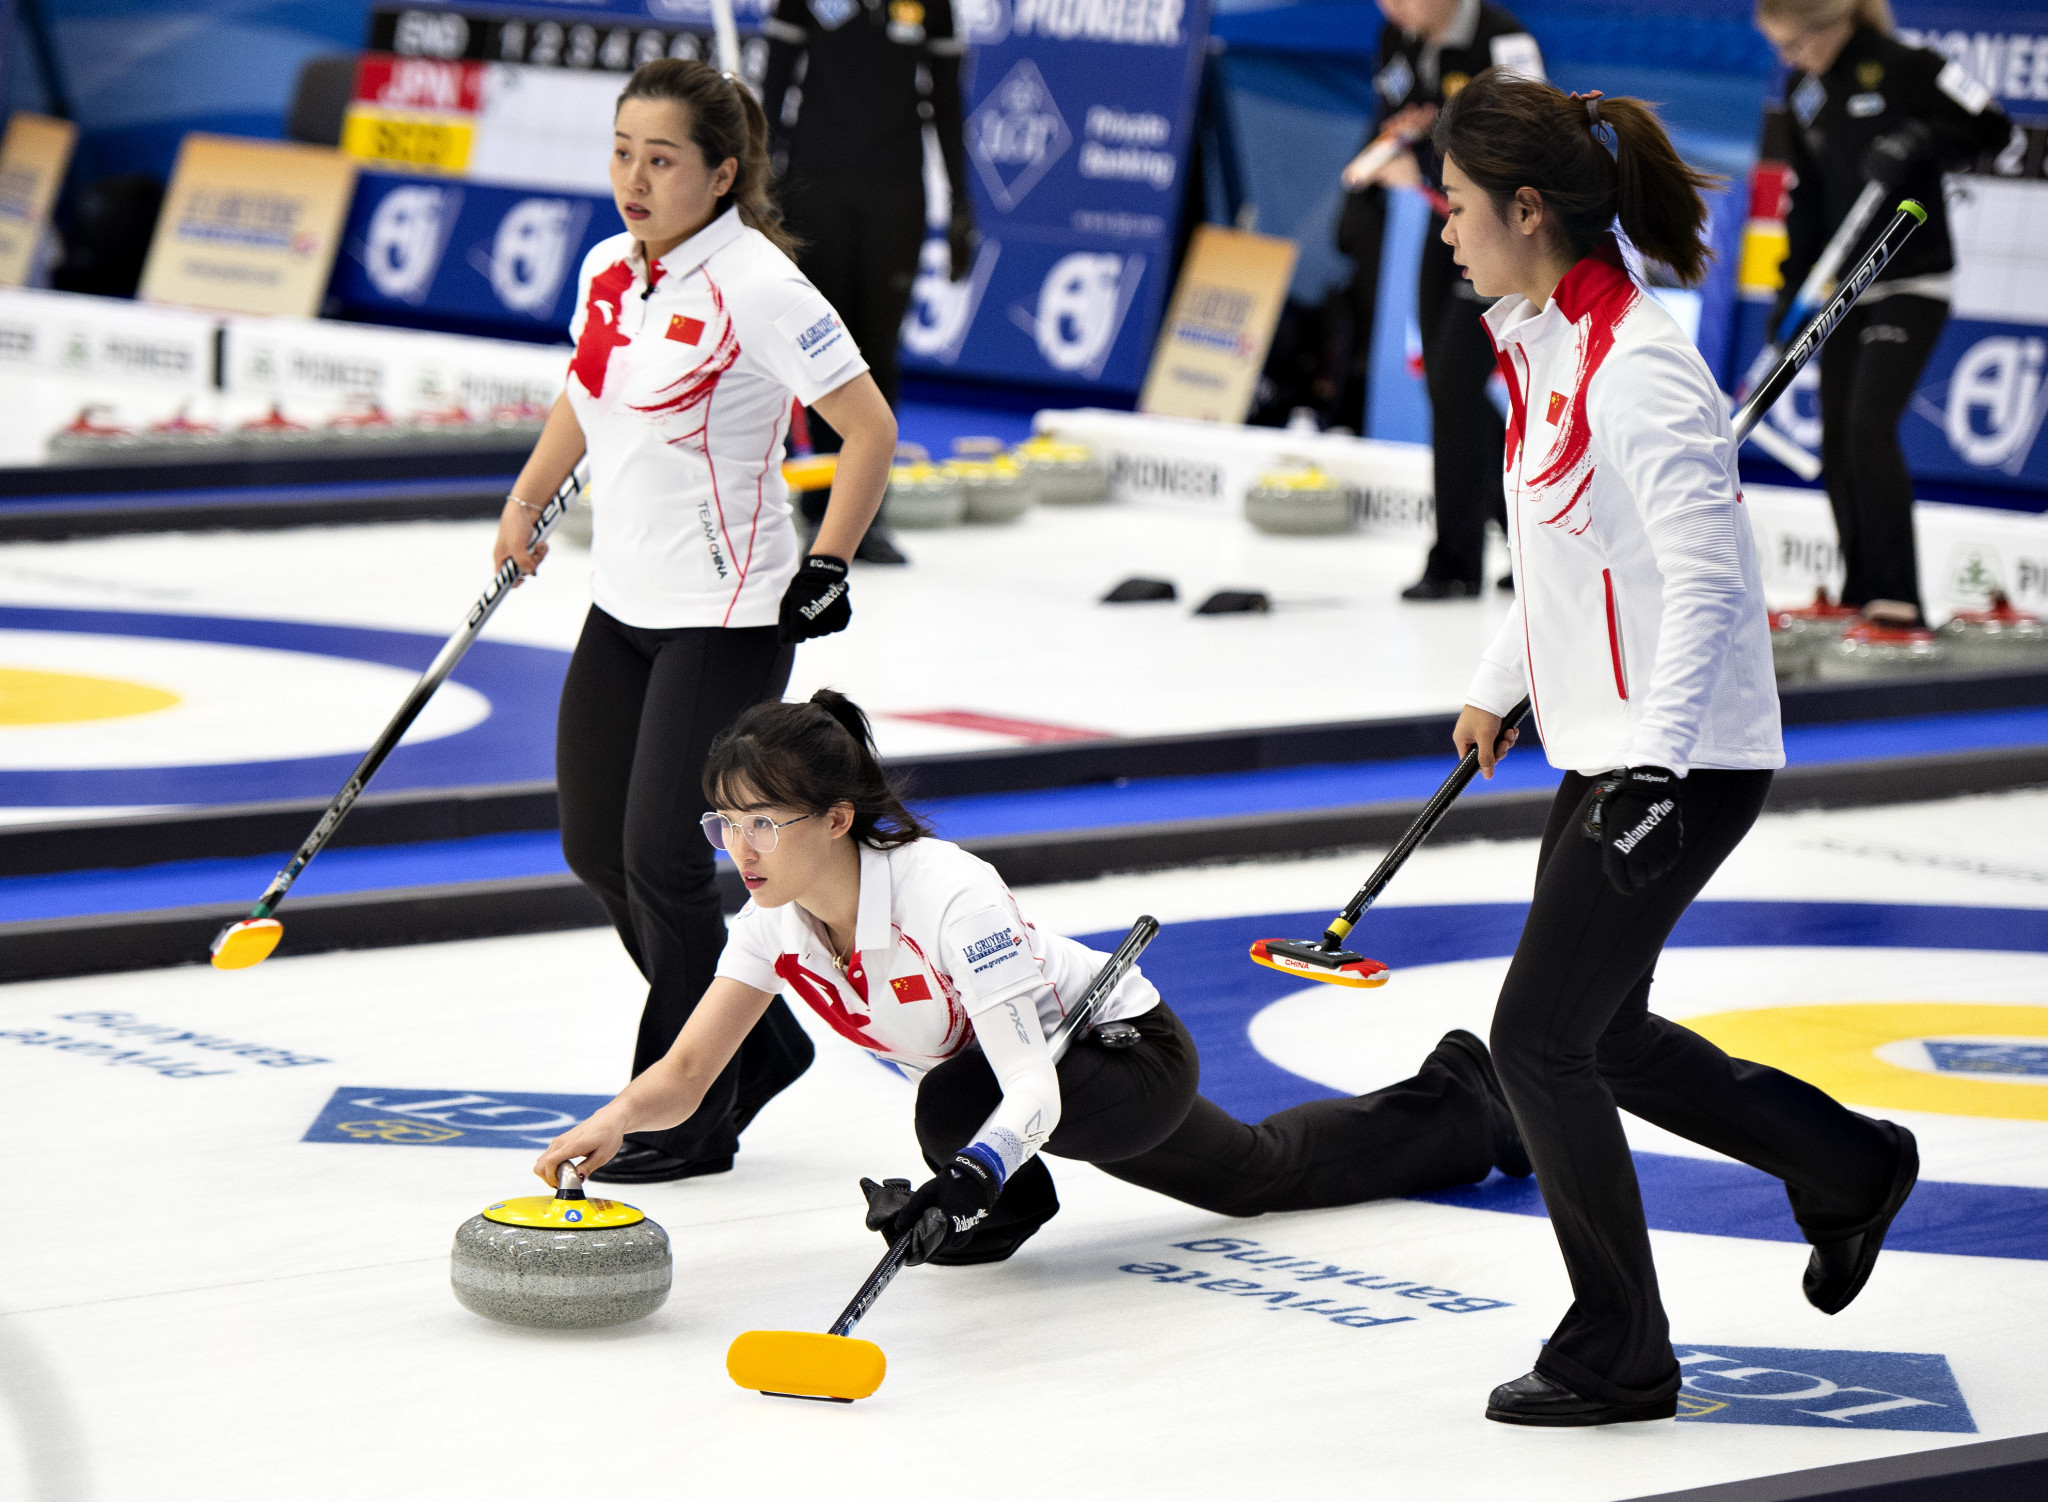 After three days China remain unbeaten at the Women's World Curling Championships ©Getty Images